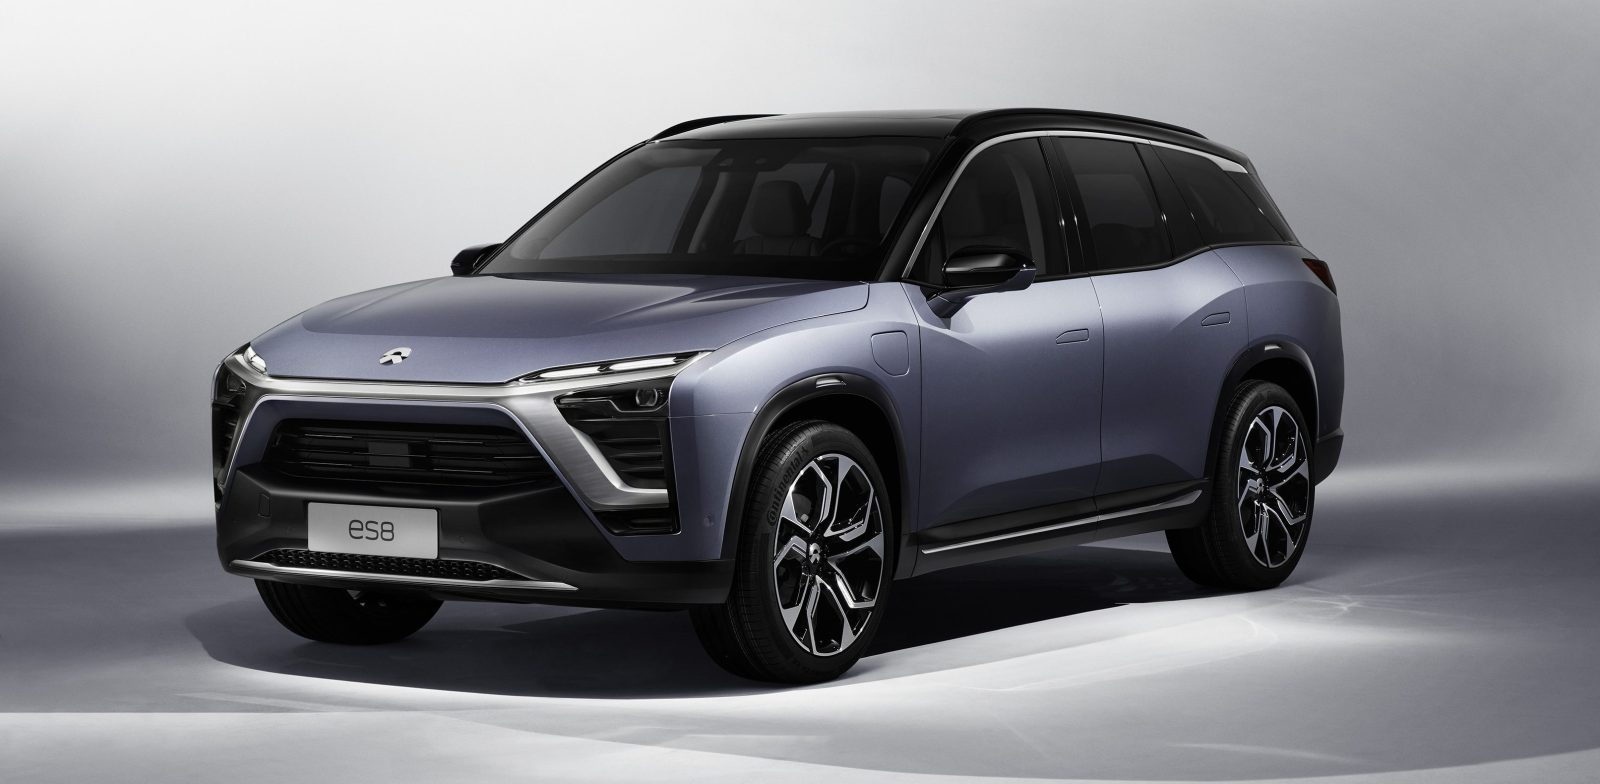 NIO es8 electric car